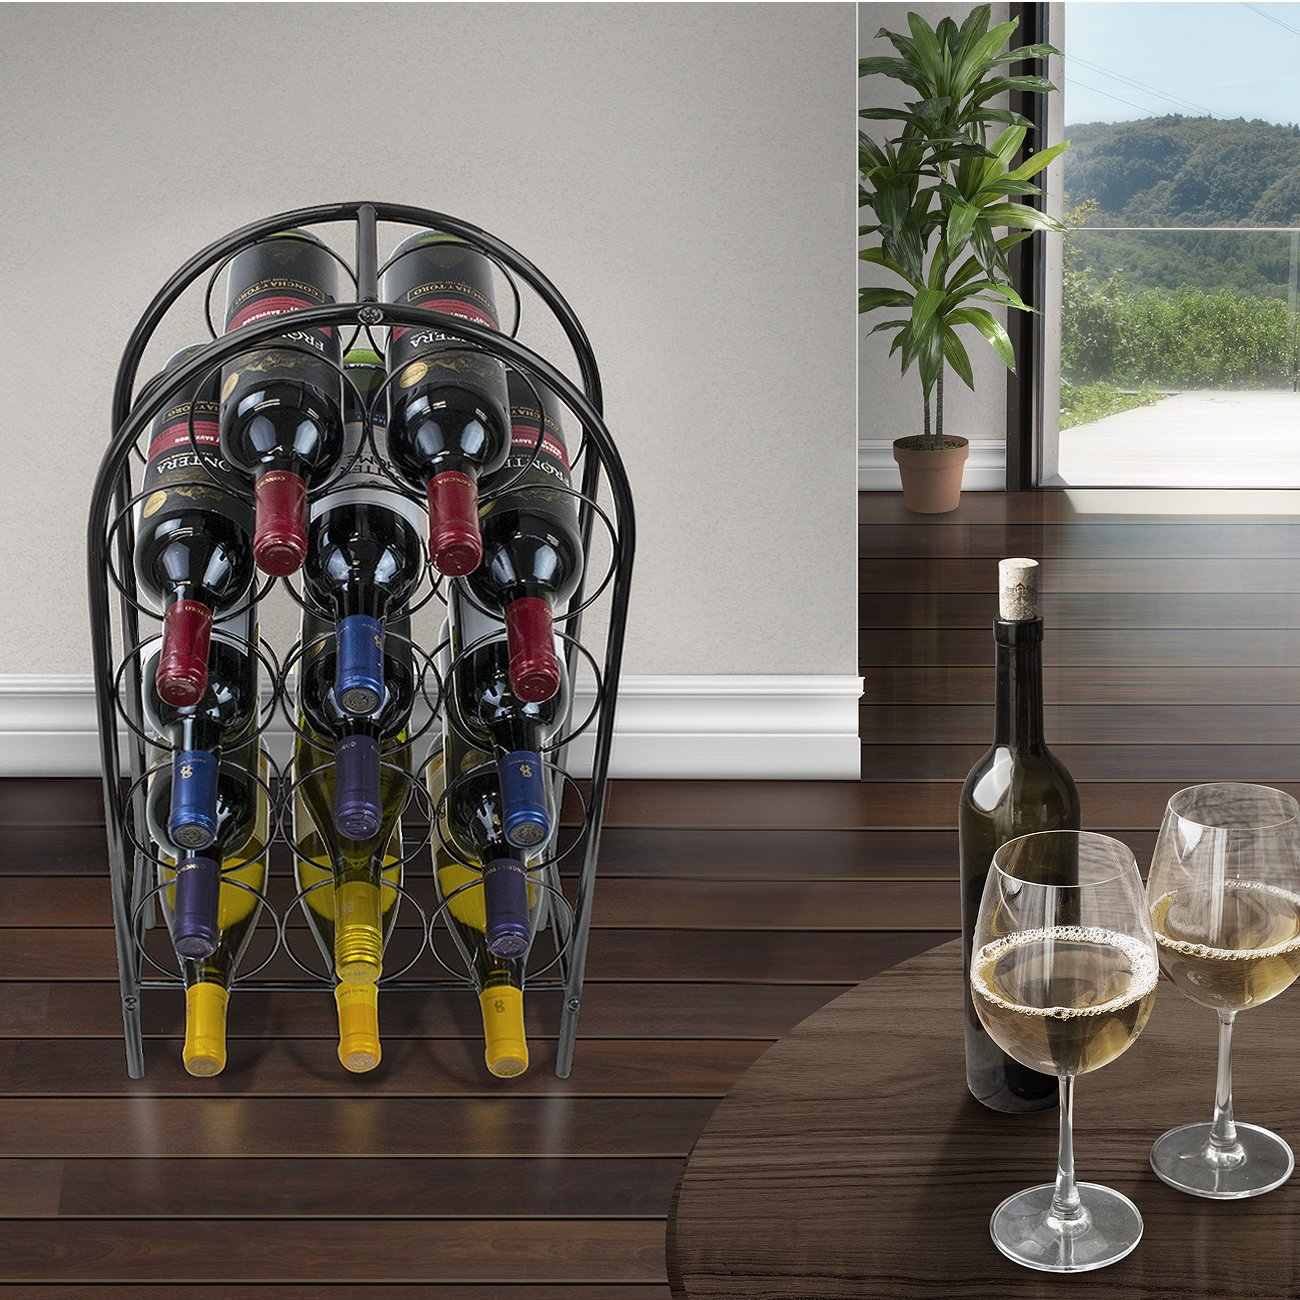 Sorbus Wine Rack Stand Bordeaux Chateau Style - Holds 14 Bottles of Your Favorite Wine - Elegant Storage for Kitchen, Dining Room, Bar, or Wine Cellar (14 Bottle - Black) by Sorbus (Image #3)